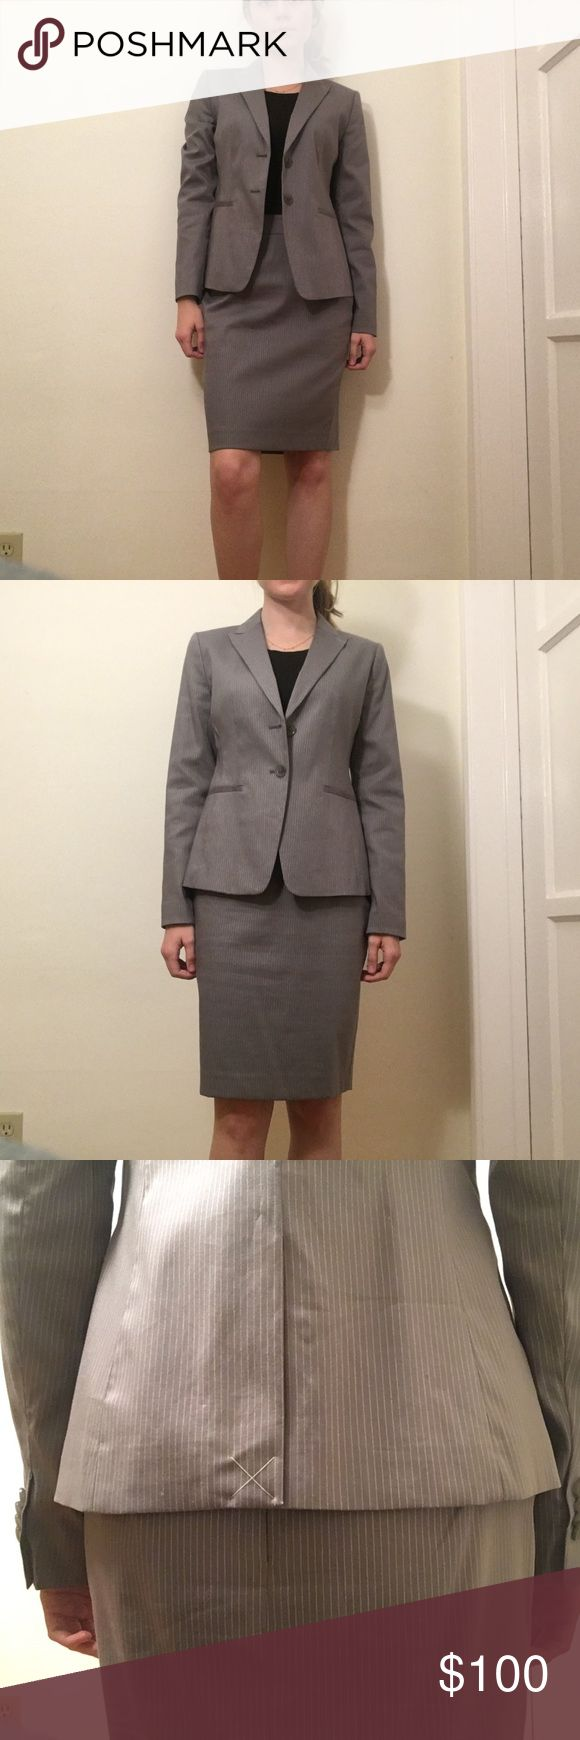 NWT Ann Taylor Grey Pinstripe Suit Grey pinstripe skirt suit by Ann Taylor. Classic piece for any closet. It's a 0P, sadly slightly too big for me 😔. I've held onto it for too long hoping that it would fit me right. Great suit for the office. The jacket is NWT. The skirt is NWOT. Jacket was originally 159.99 and skirt was 89.99, but I bought it on sale for about 150. Amazing deal!! Ann Taylor Jackets & Coats Blazers